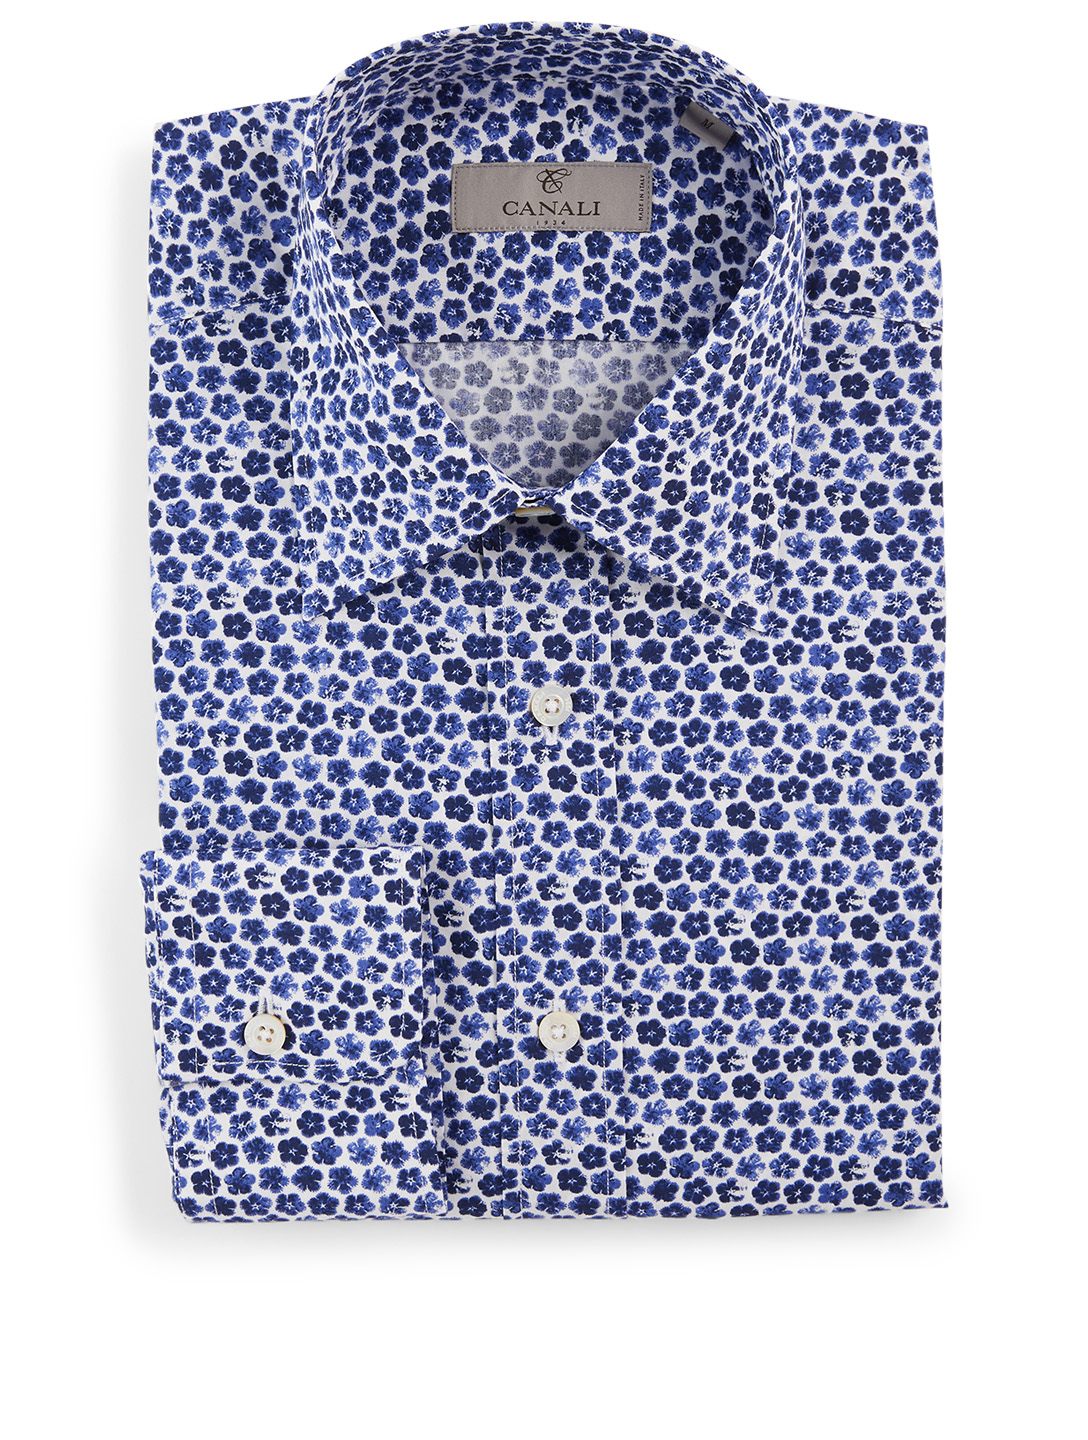 CANALI Cotton Shirt In Floral Print Men's Blue